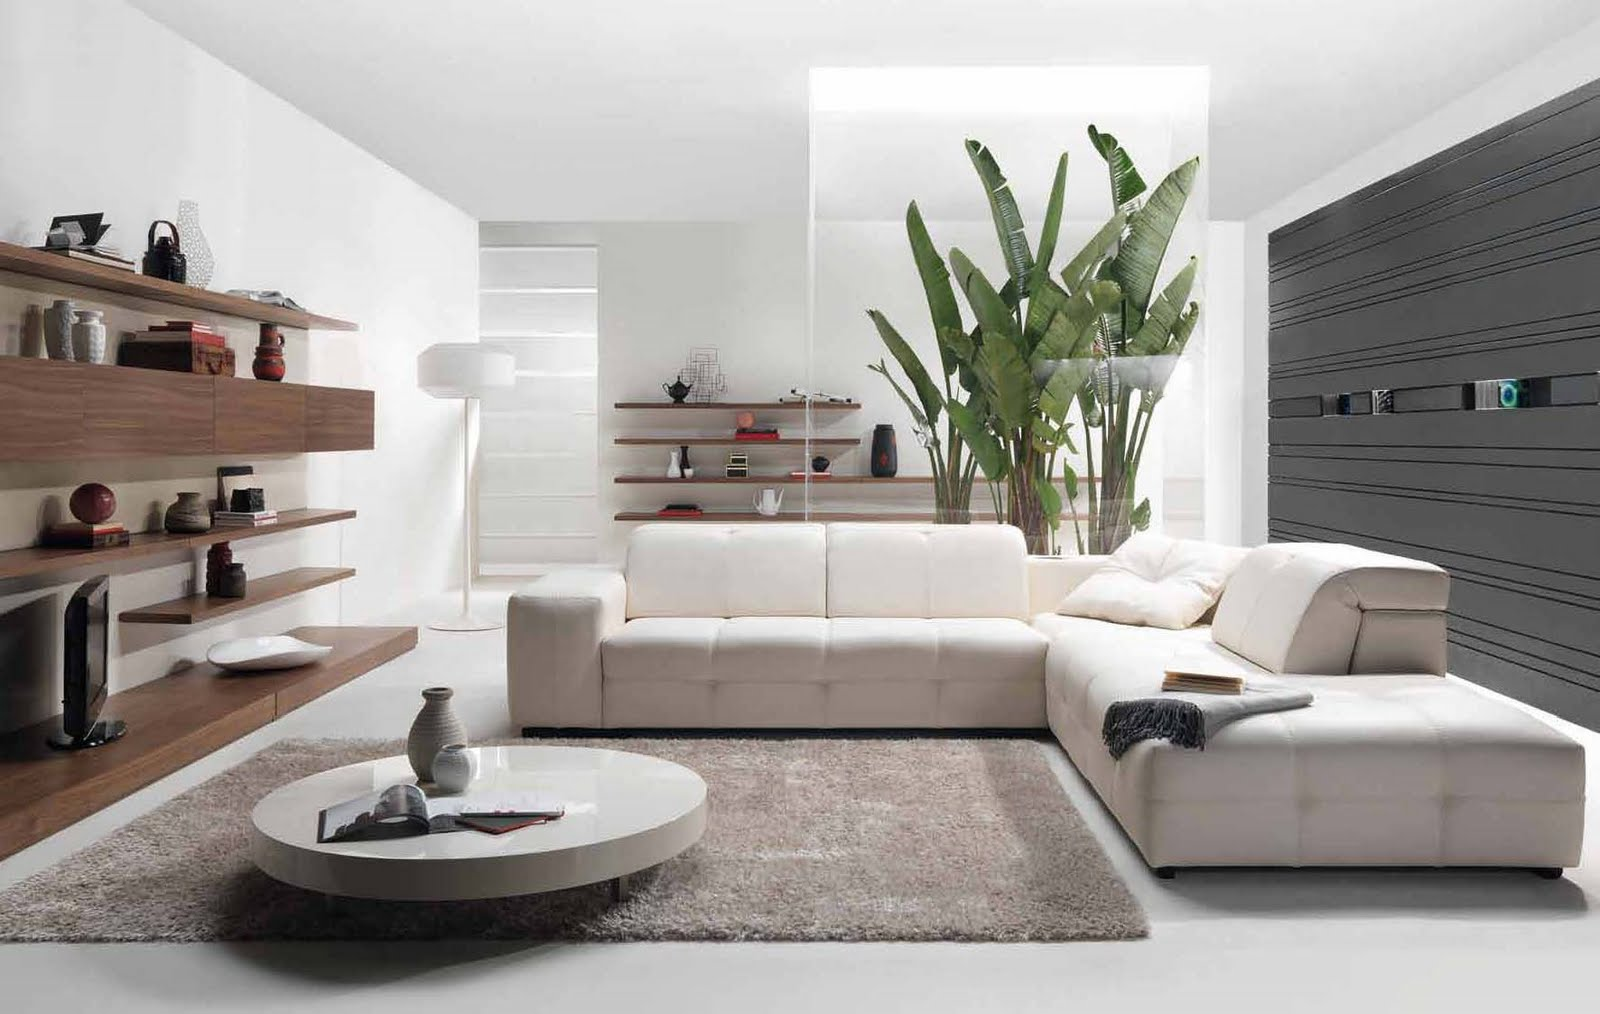 Future house design modern living room interior design for Interior design for living room images